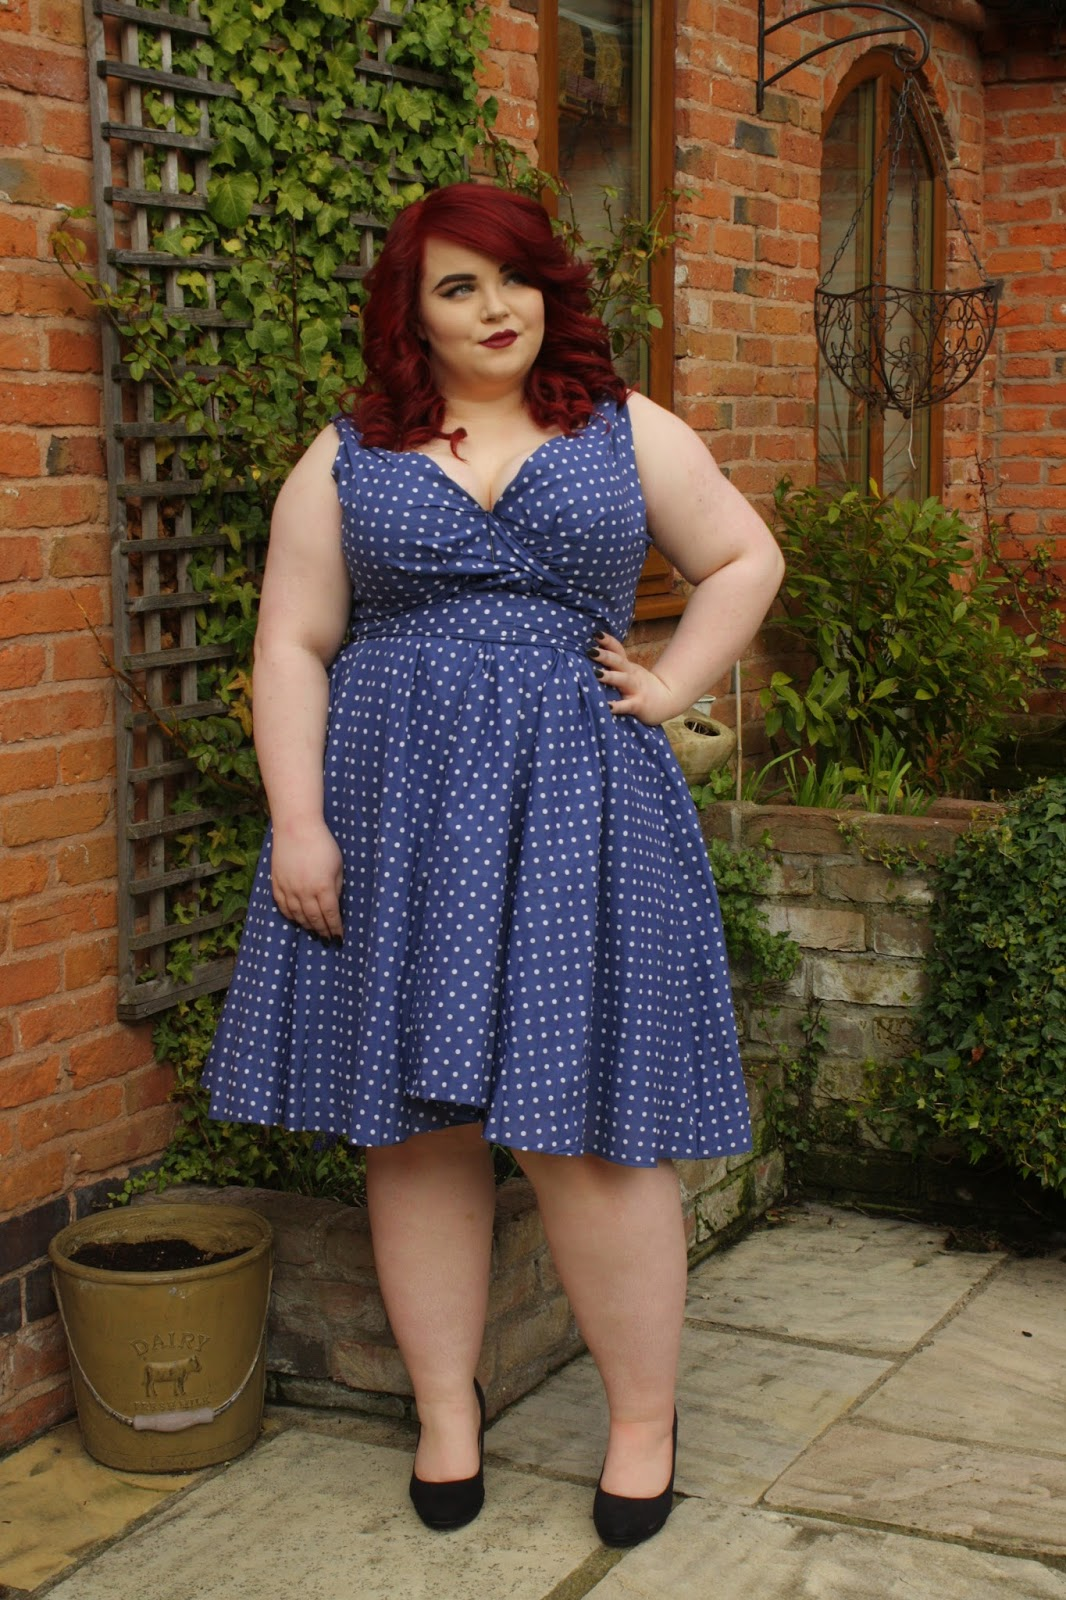 Bbw Couture Blue Polka Dot 1950s Vintage Party Dress She Might Be Loved